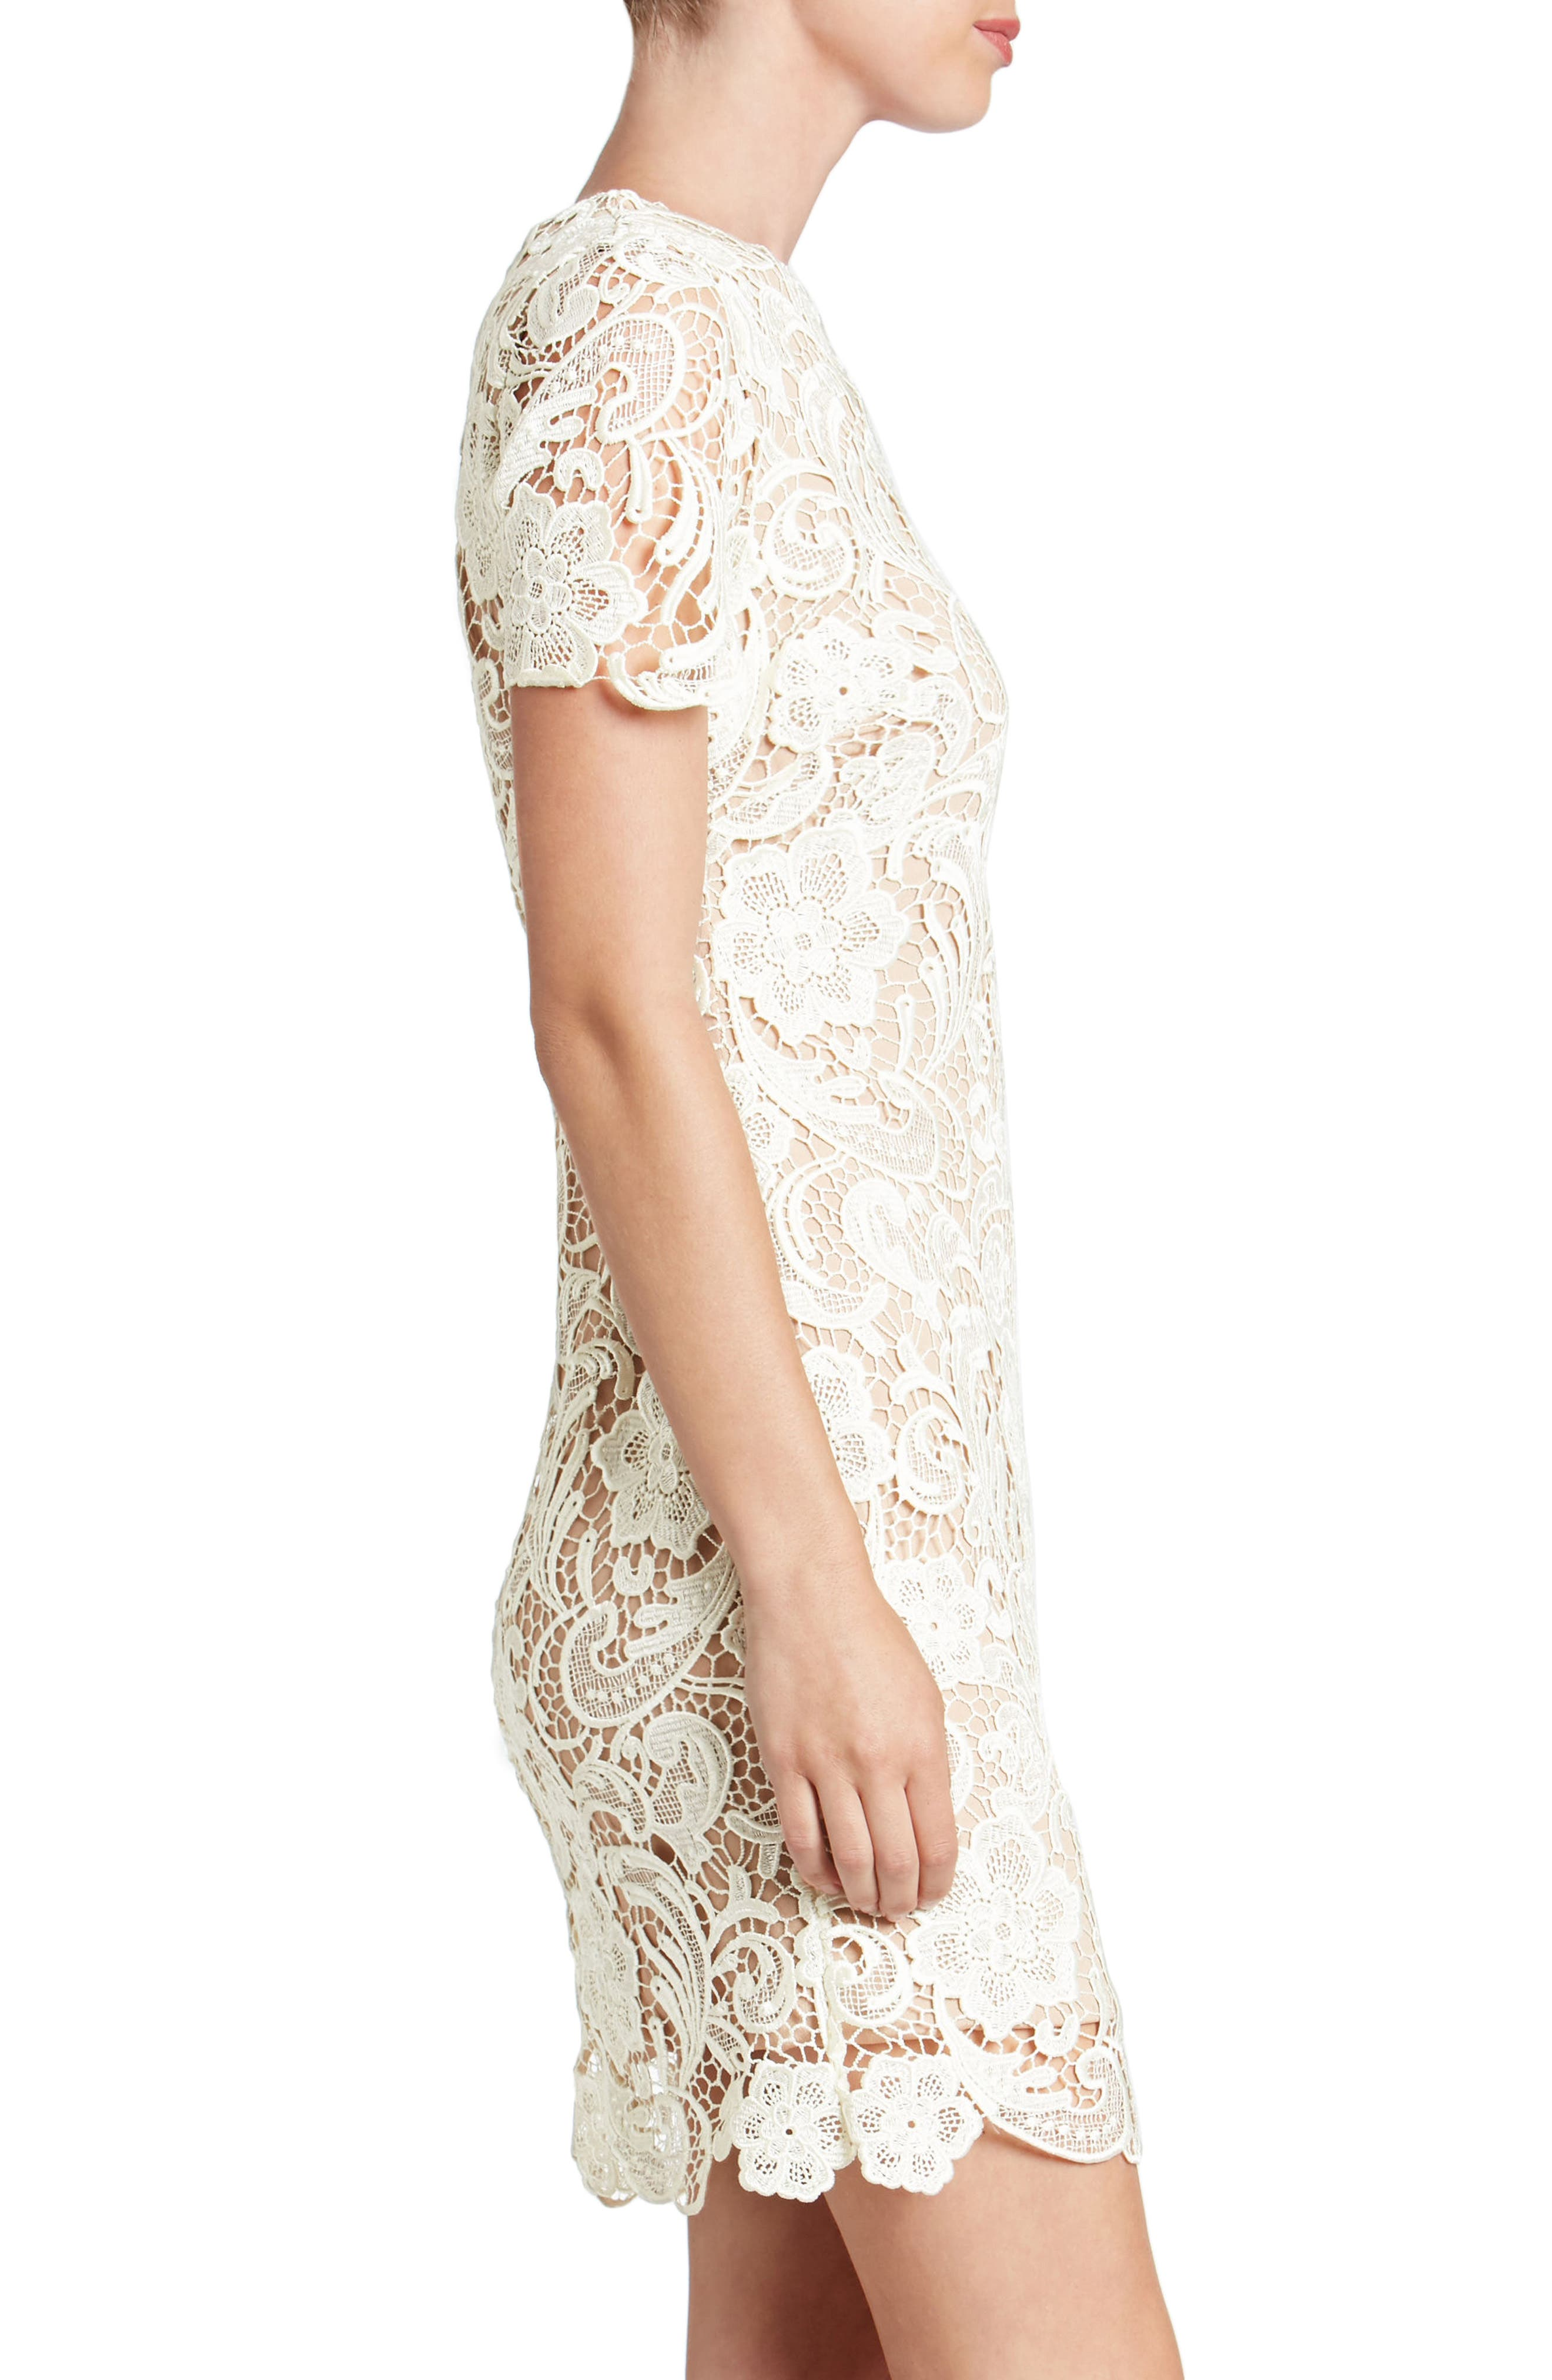 Anna Crochet Lace Sheath Dress,                             Alternate thumbnail 3, color,                             WHITE/ NUDE